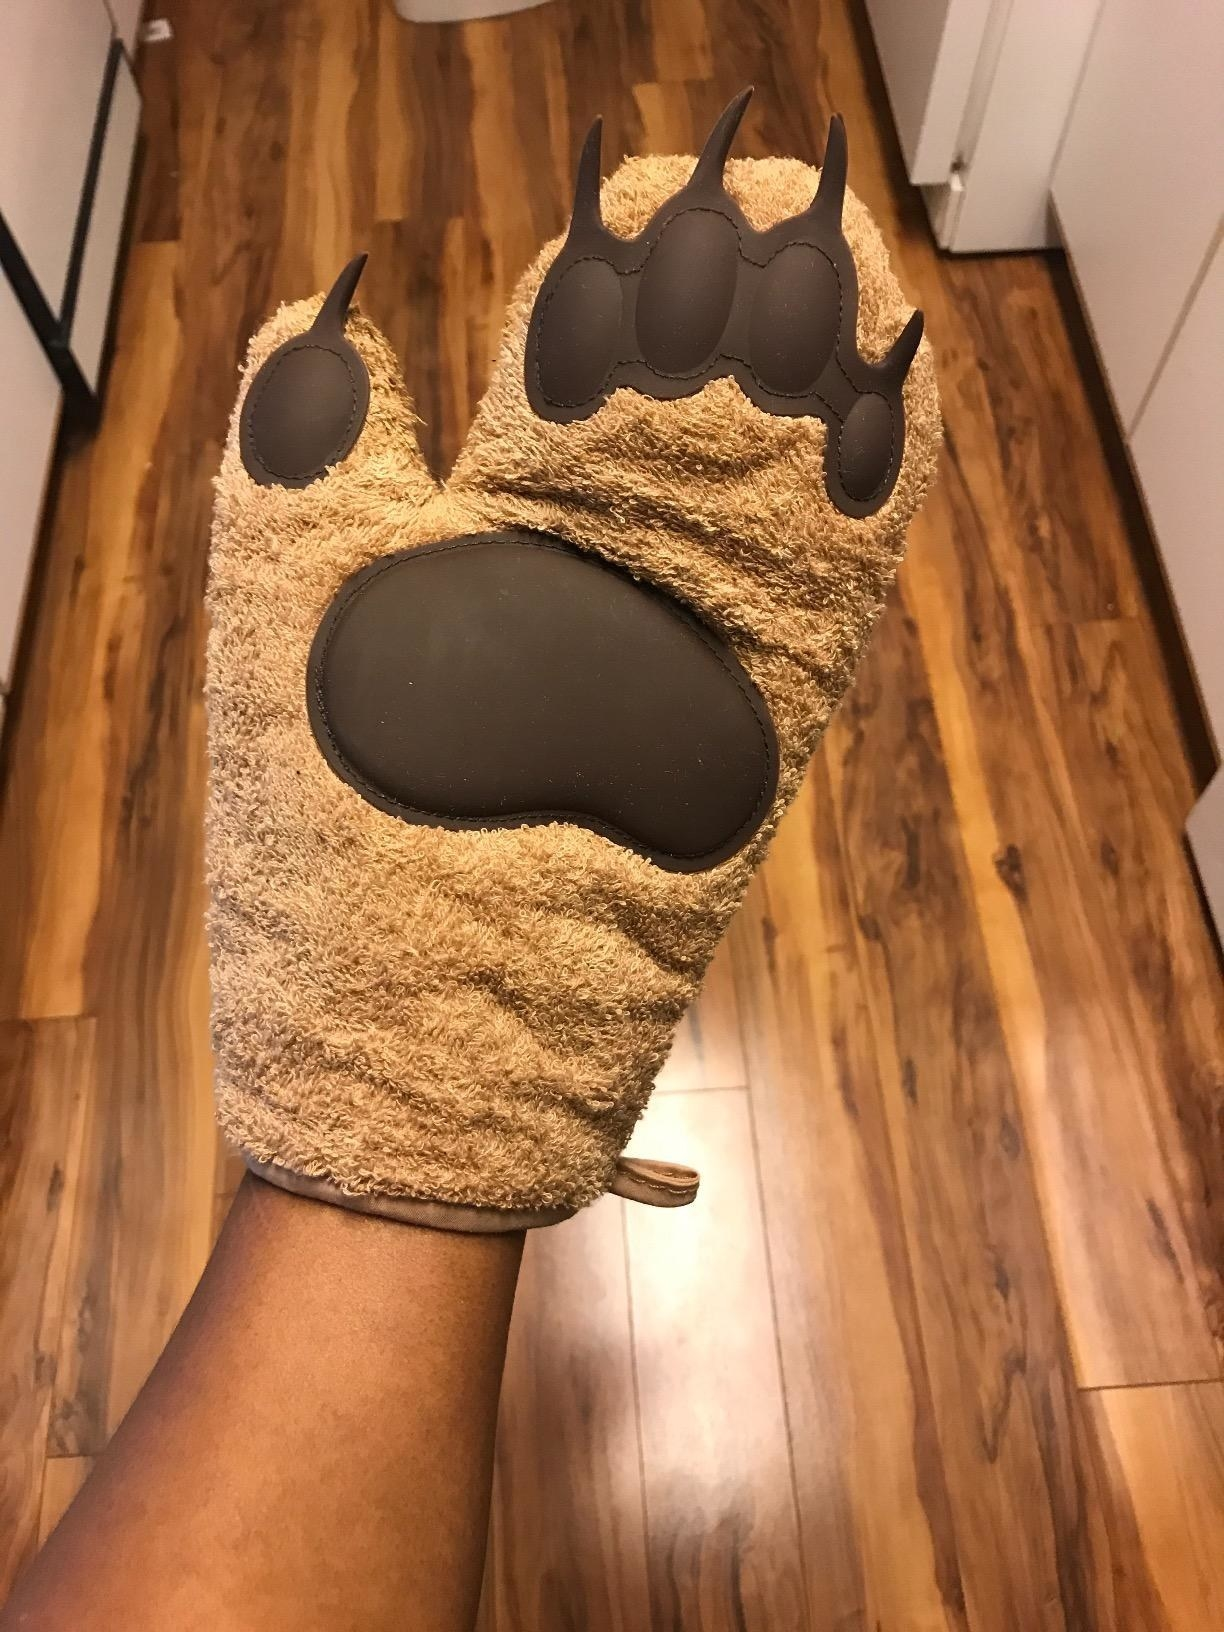 a reviewer wearing an oven mitt that looks like a bear claw